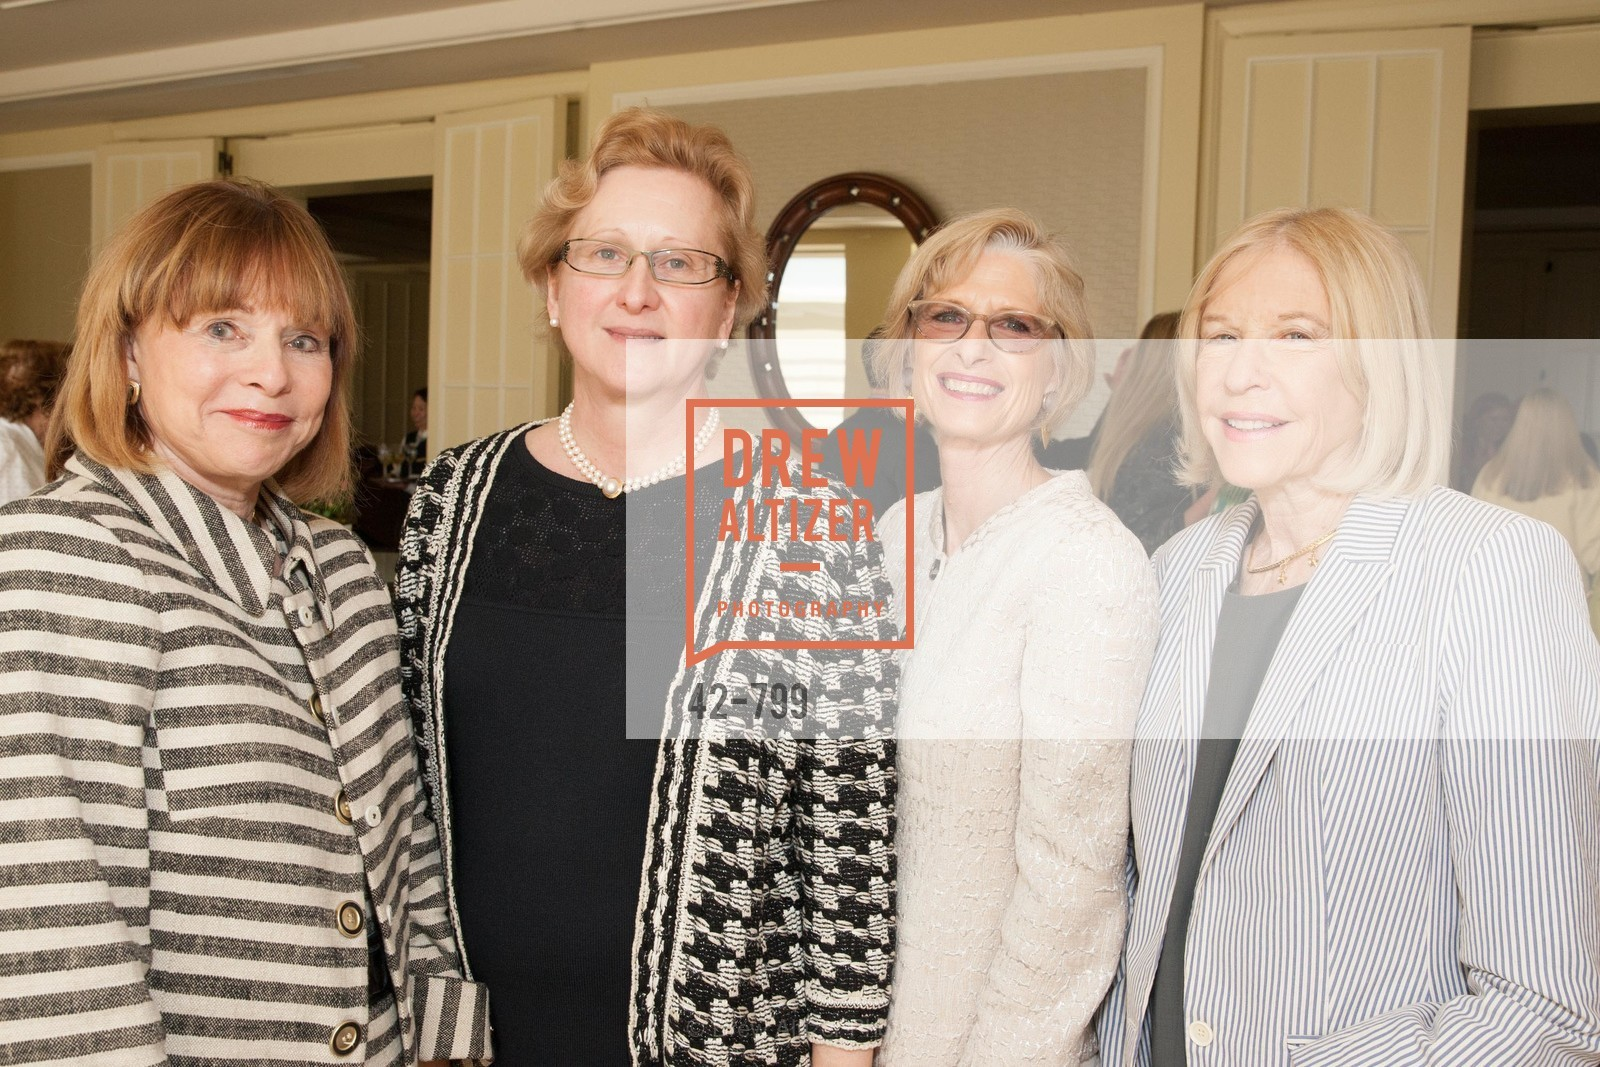 Nancy Rubinstein, Marty Tunnell, Carmen Schiavone, Sandra Robbins, COMPASSION & CHOICES - Empowerment Luncheon, US, April 23rd, 2015,Drew Altizer, Drew Altizer Photography, full-service agency, private events, San Francisco photographer, photographer california